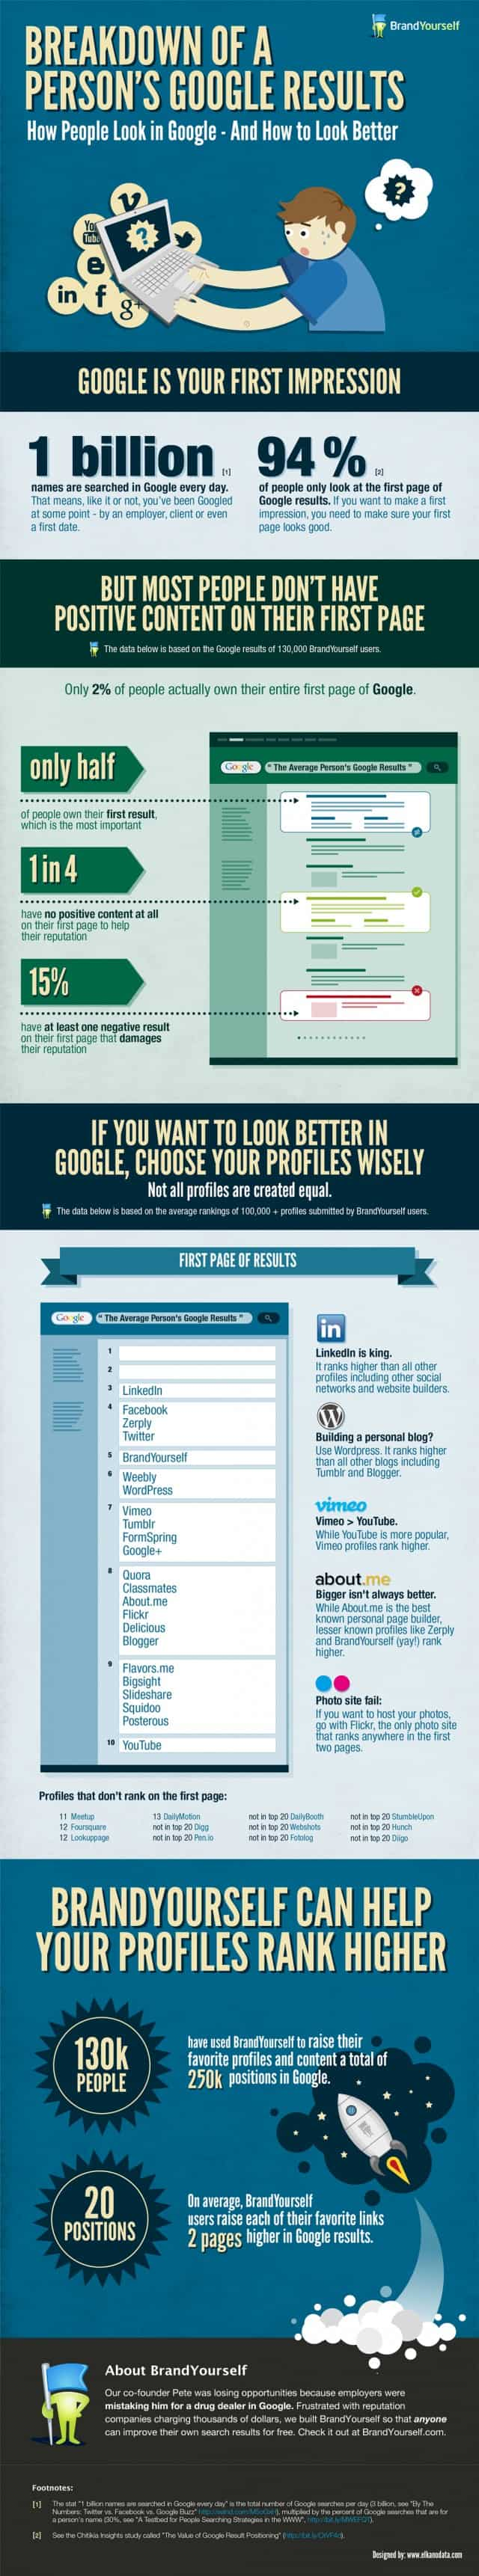 Brand Yourself Infographic